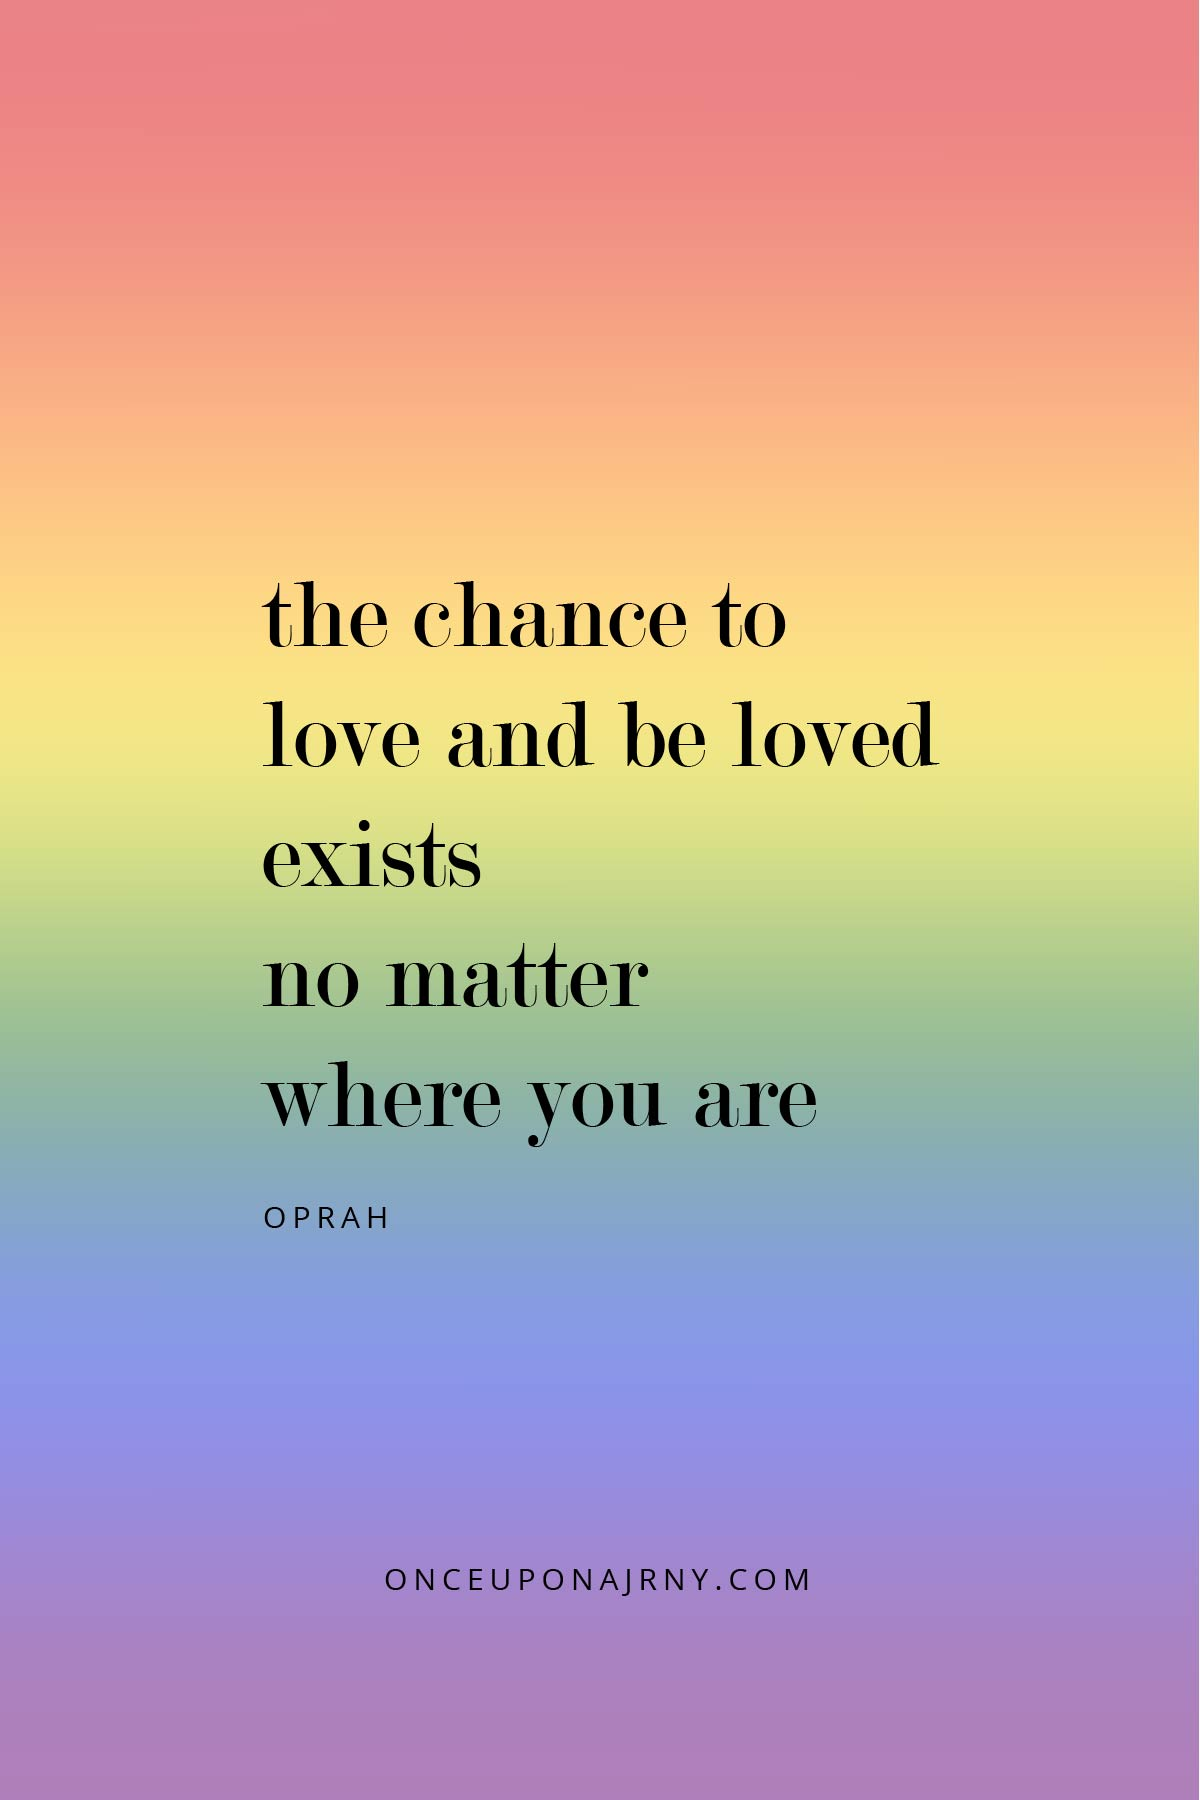 The chance to love and be loved exists no matter where you are - Oprah black lesbian quote